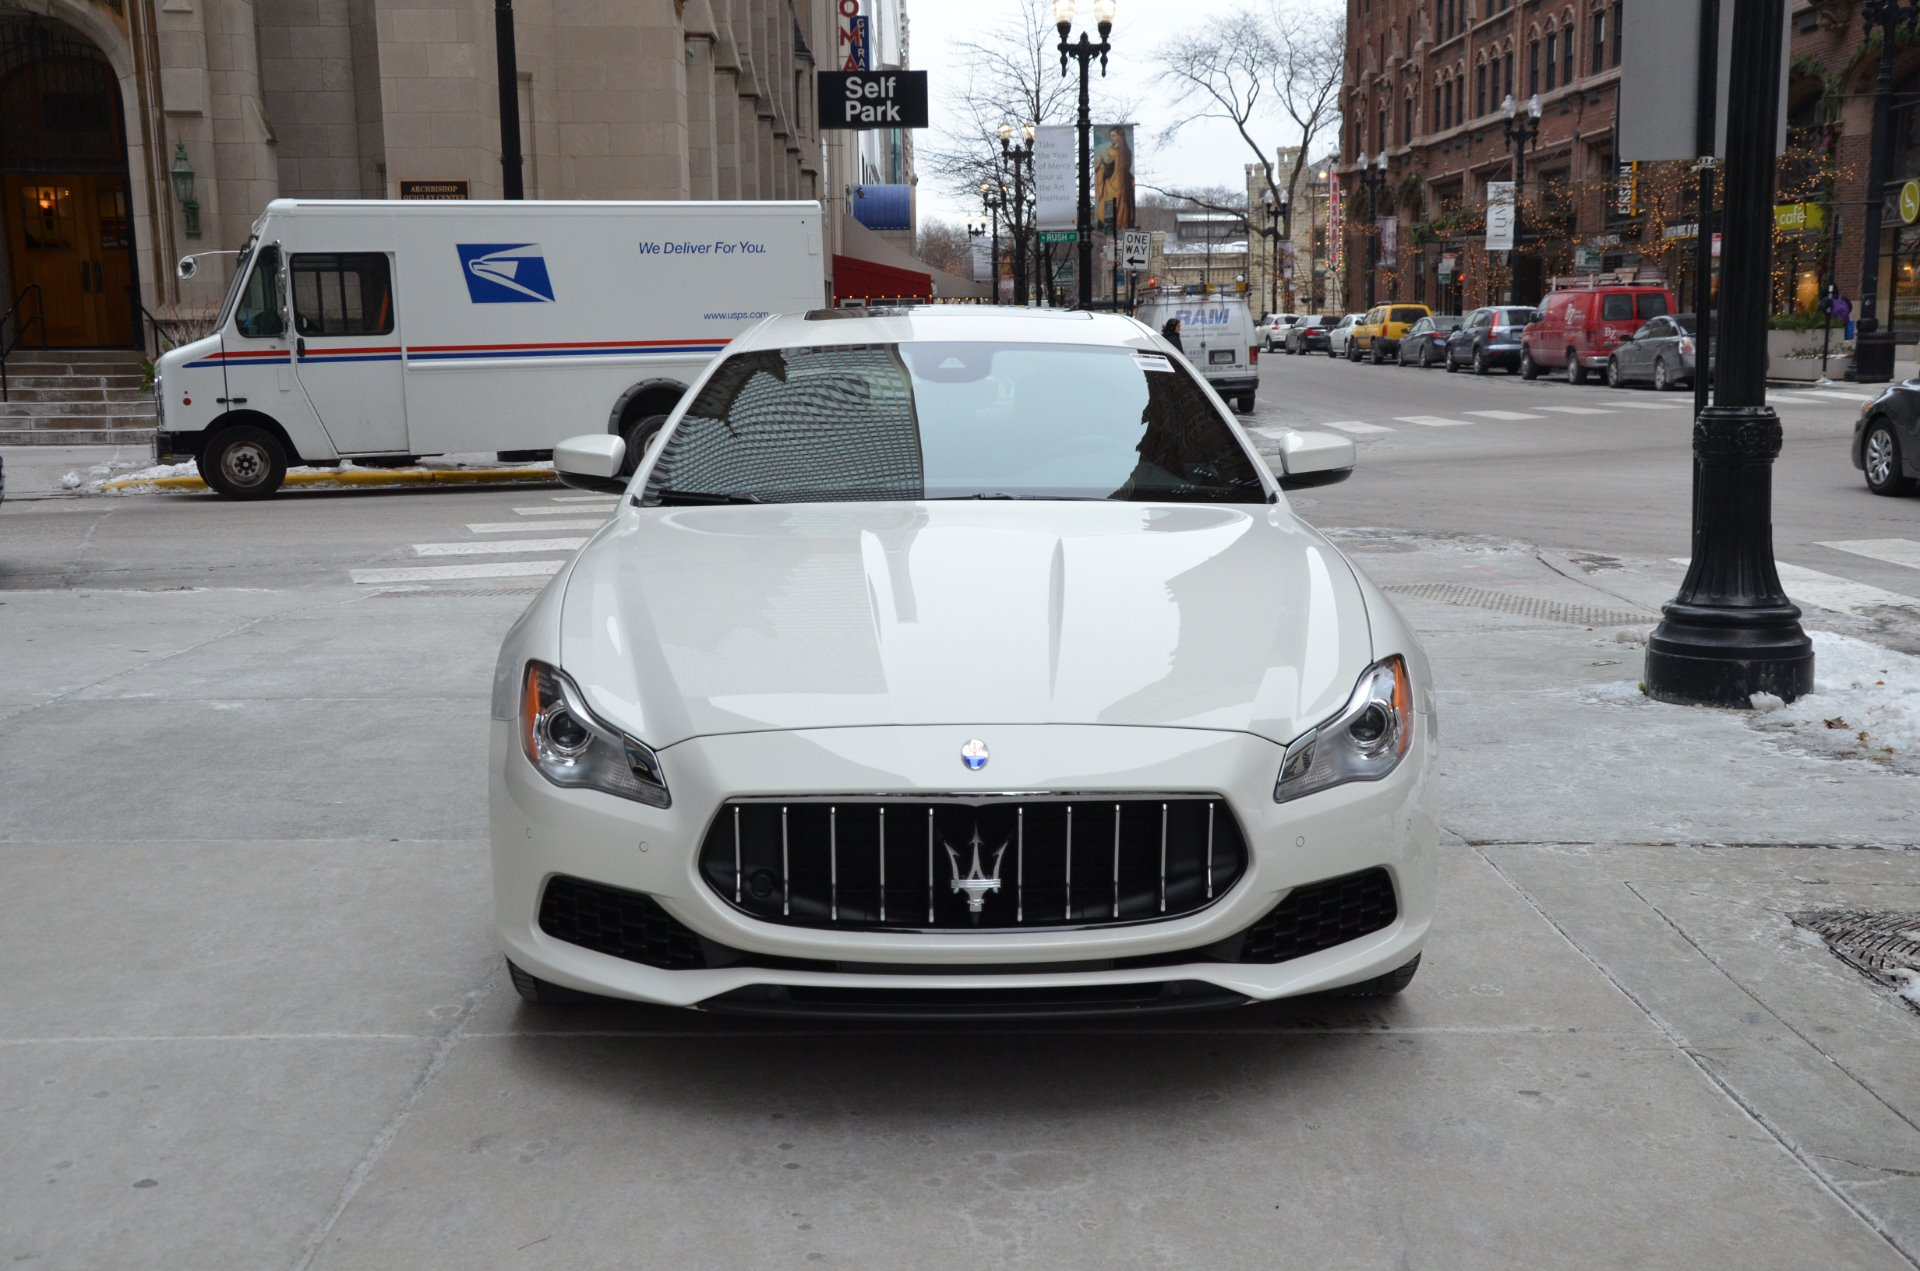 2017 maserati quattroporte sq4 s q4 stock m549 for sale near chicago il il maserati dealer. Black Bedroom Furniture Sets. Home Design Ideas